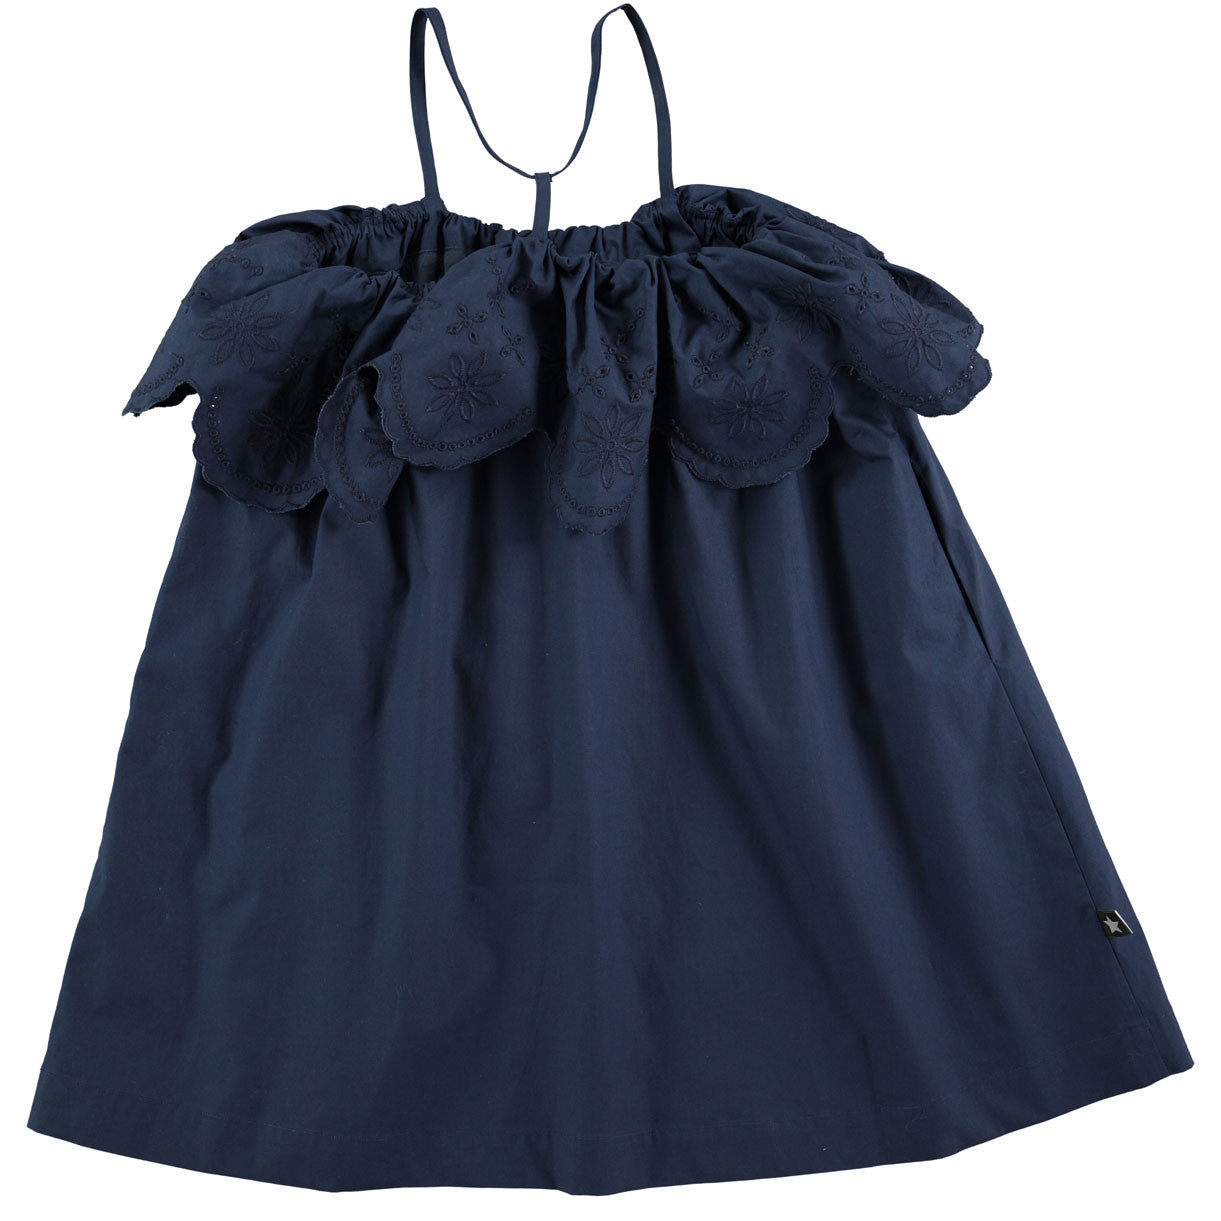 Molo Navy Eyelet Ruffle Dress - Ladida